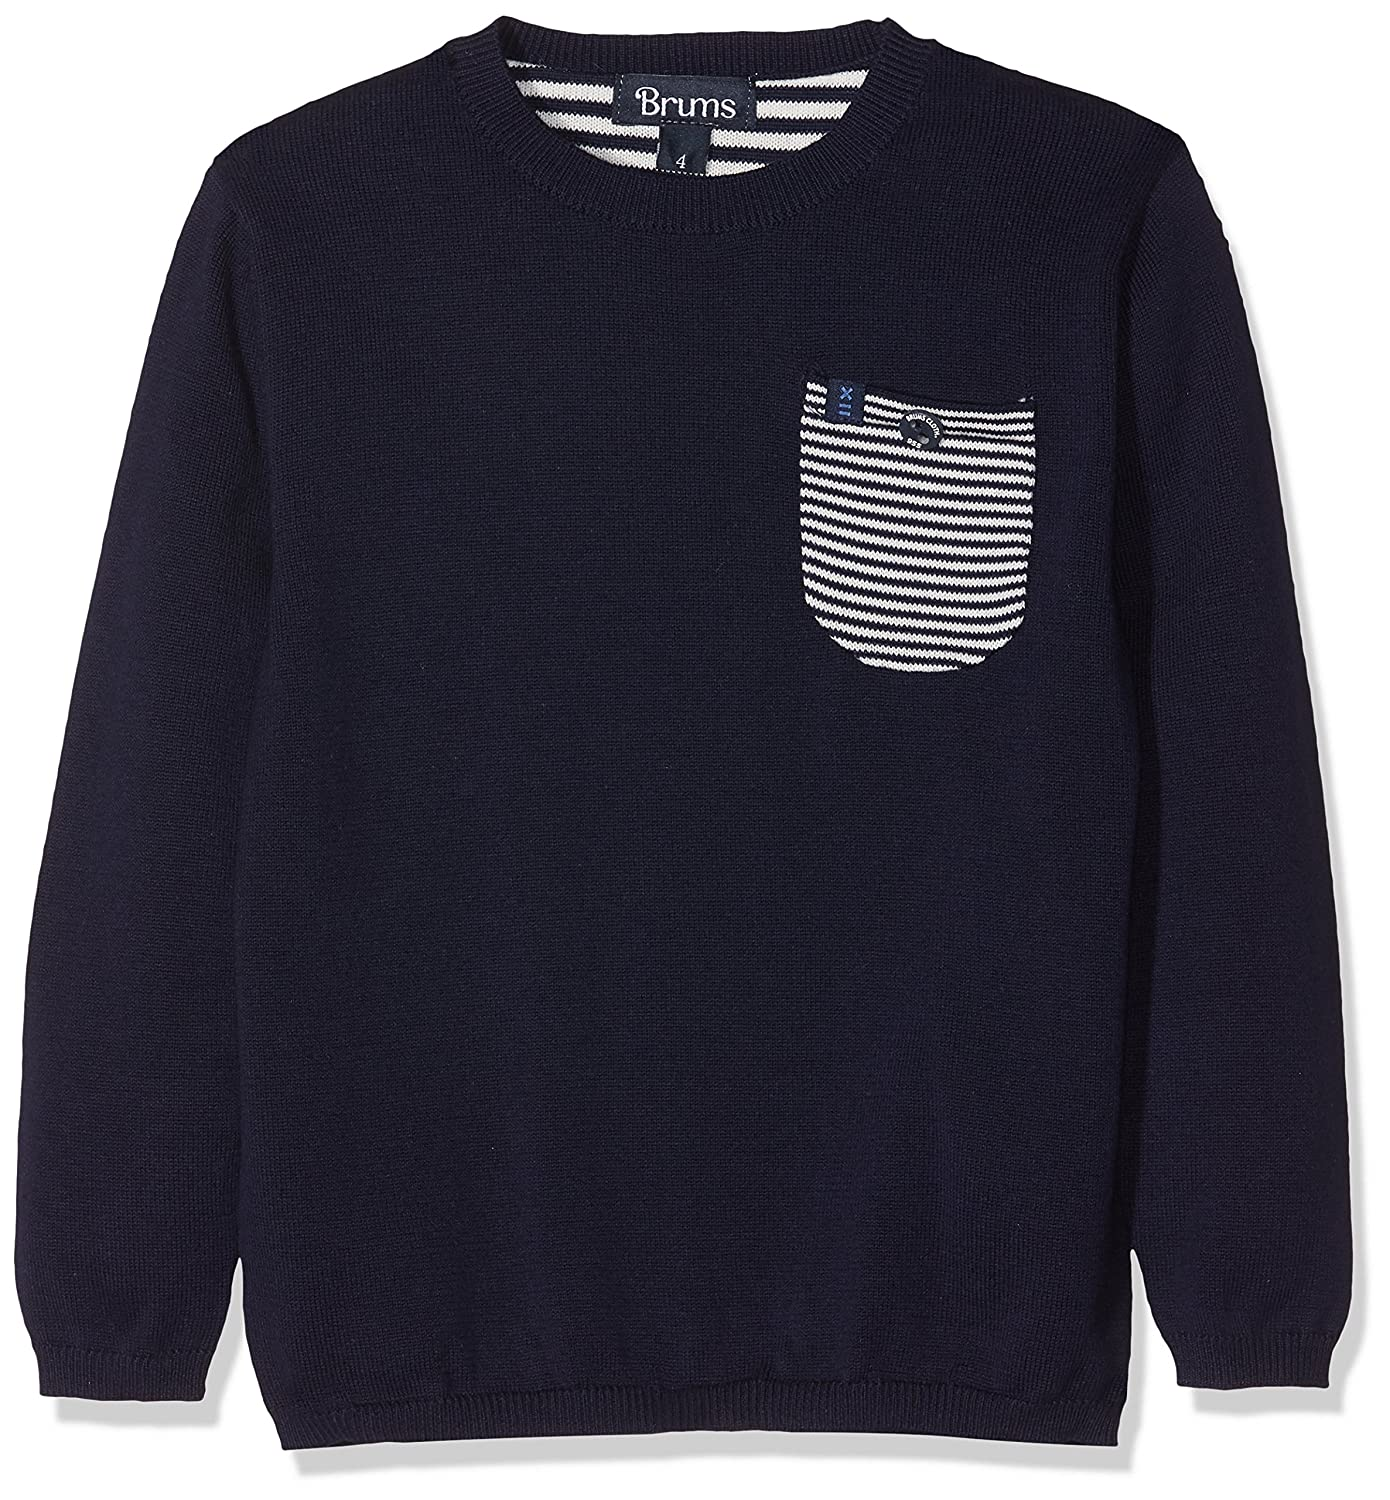 Brums Maglione Bambino 181BFHC005